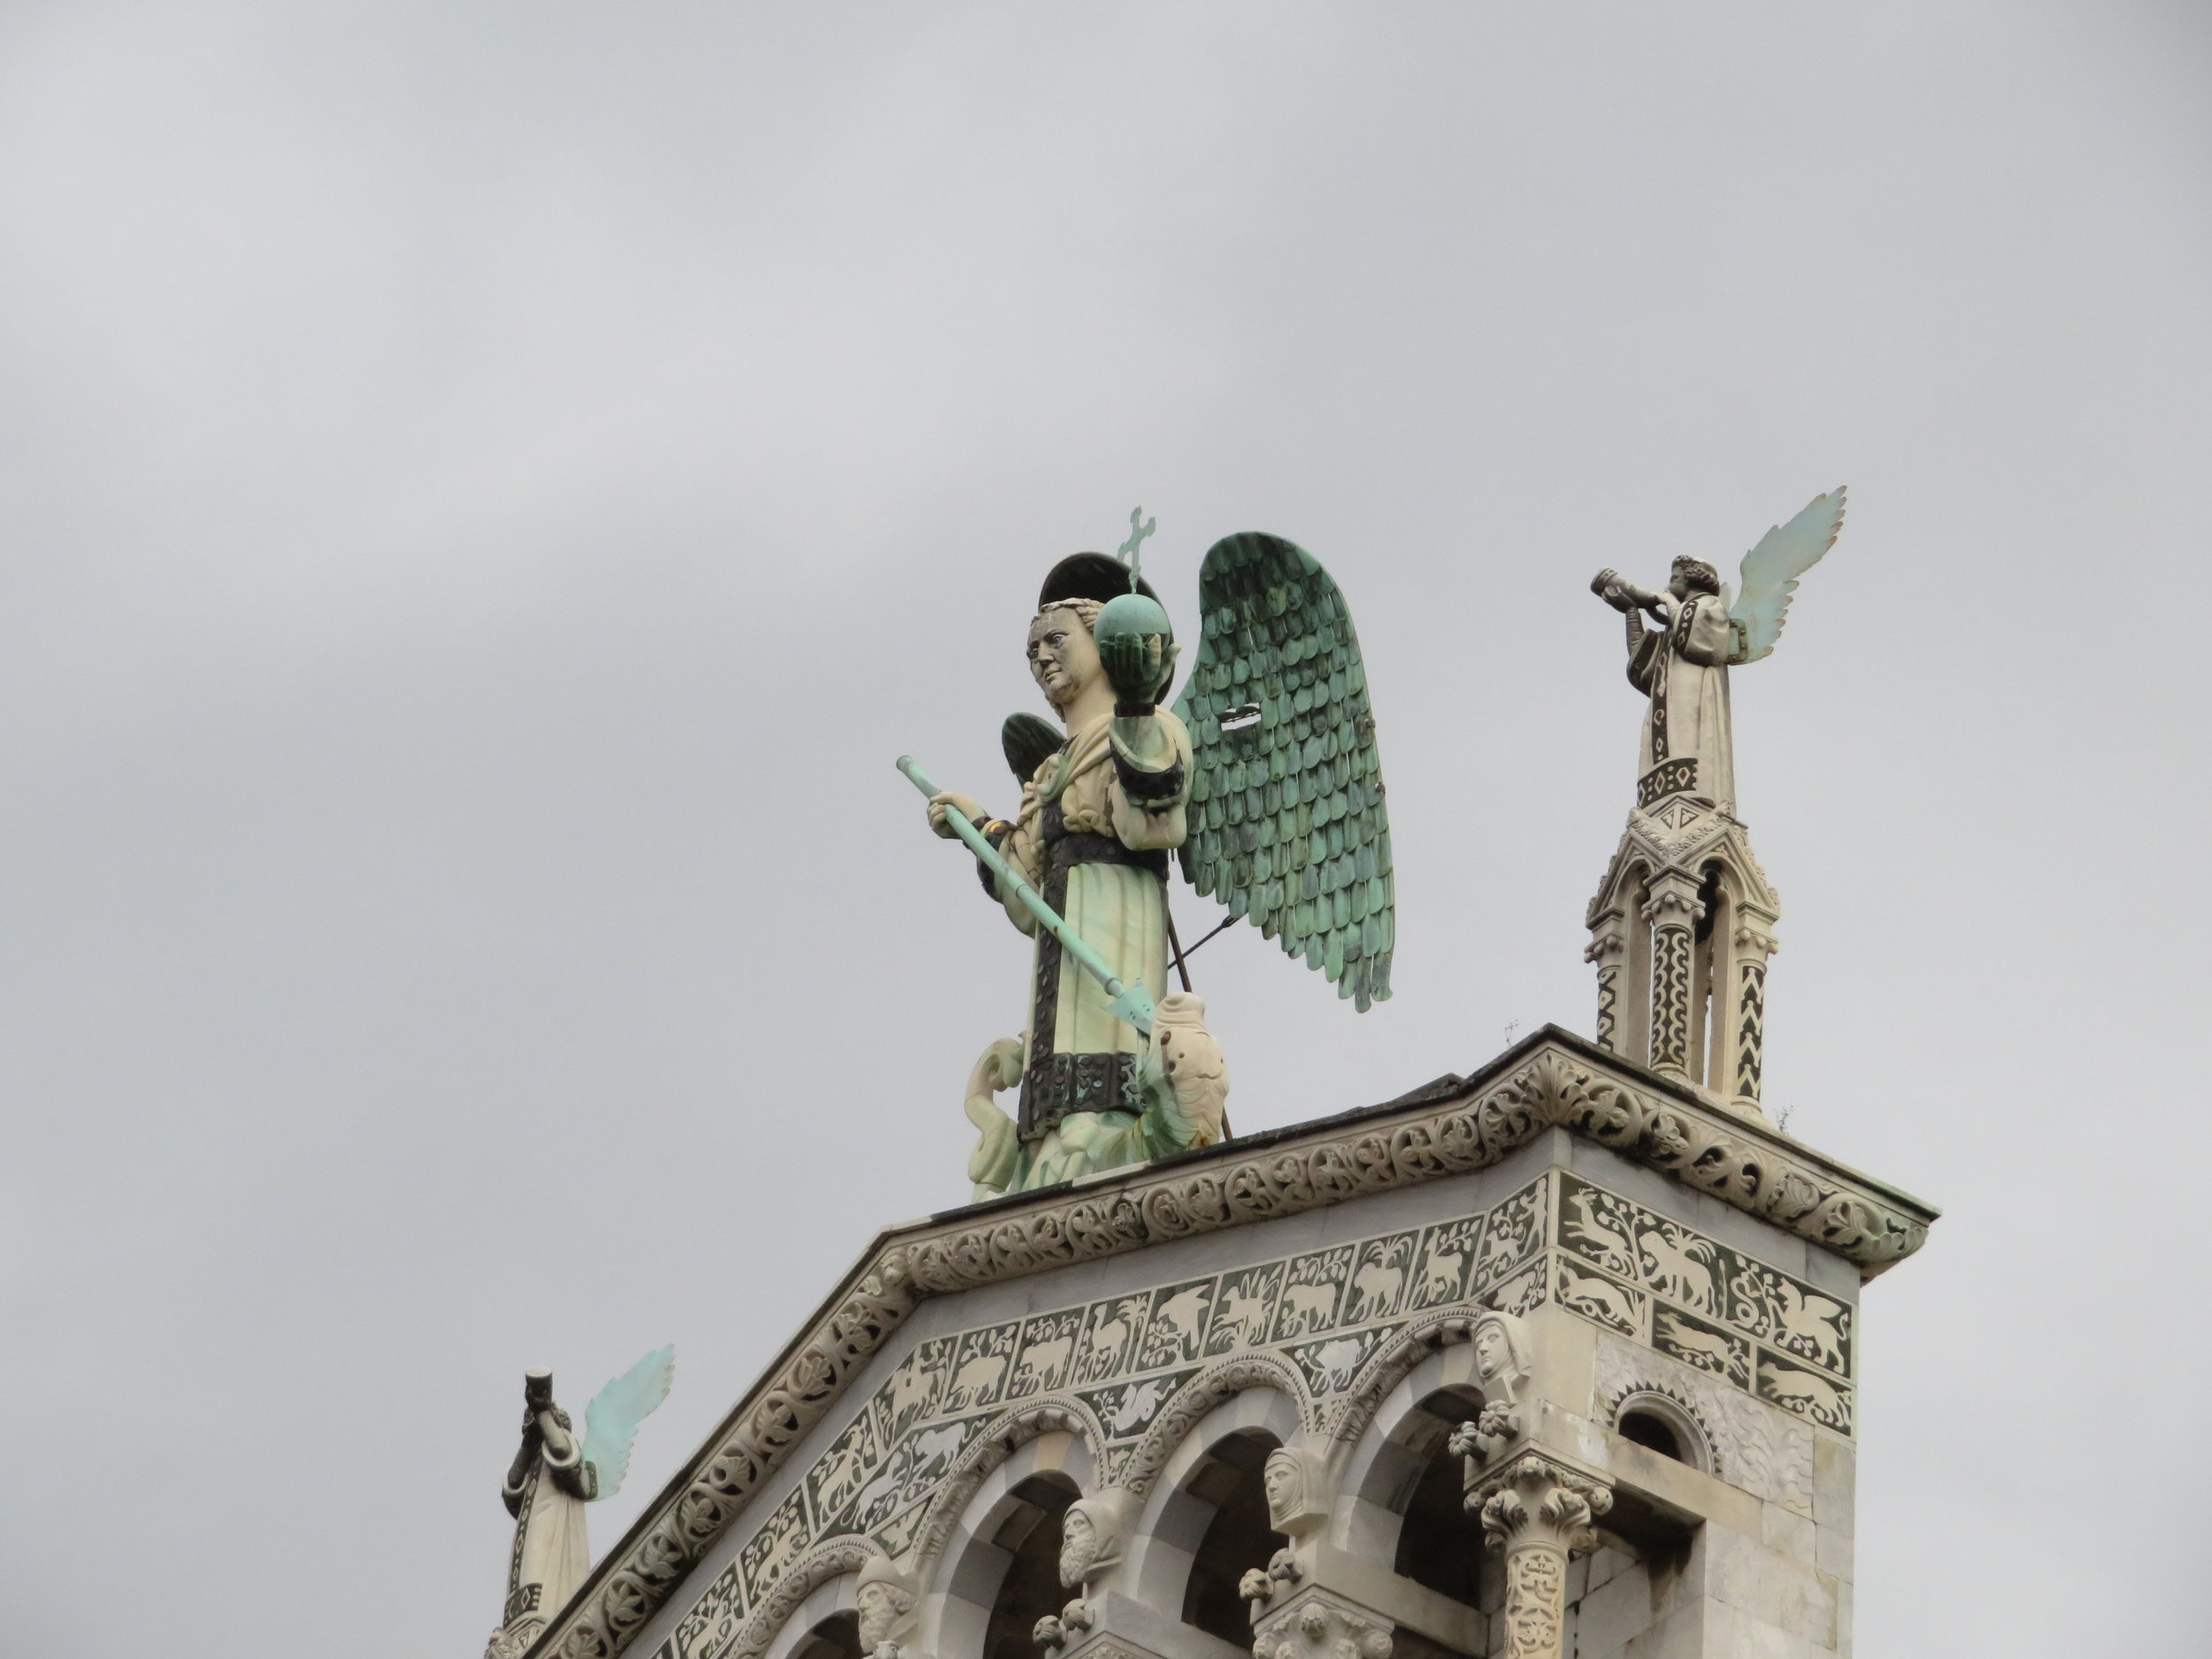 St Michael and his angels